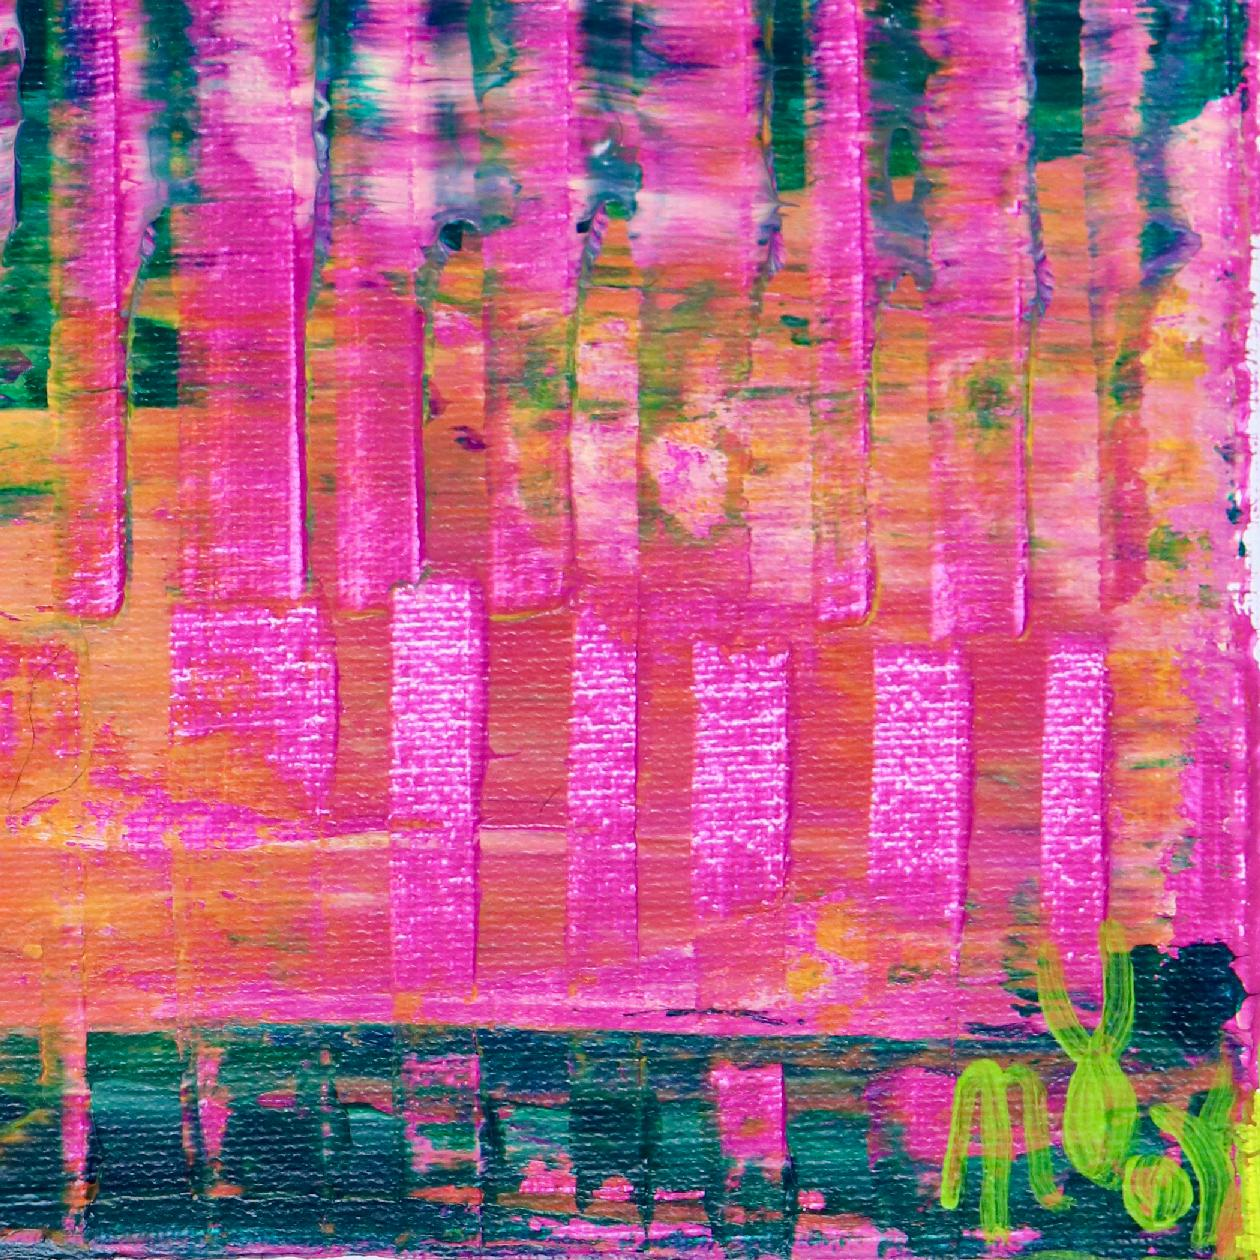 Signature Detail - Pink Refractions (Green Textures) 2 (2020) by Nestor Toro